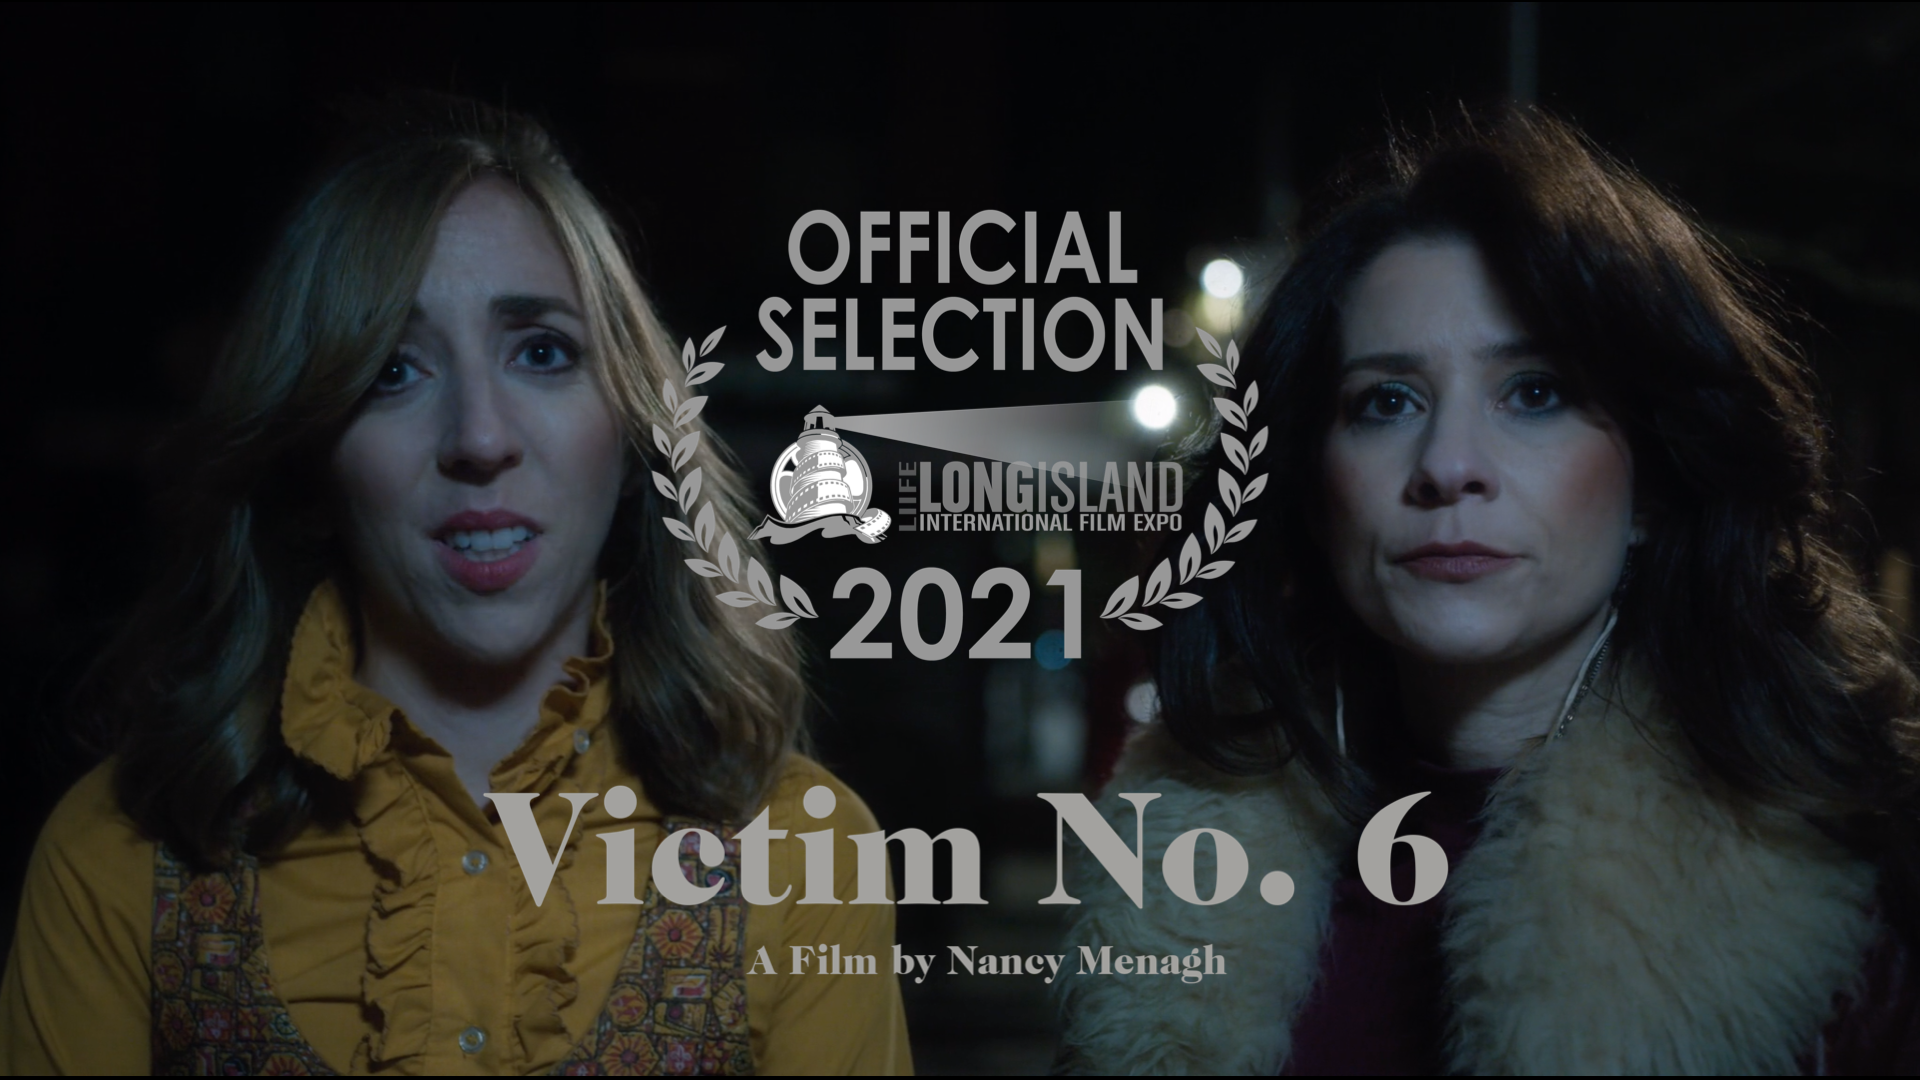 victim_no_6_is_an_official_selection_at_LIIFE